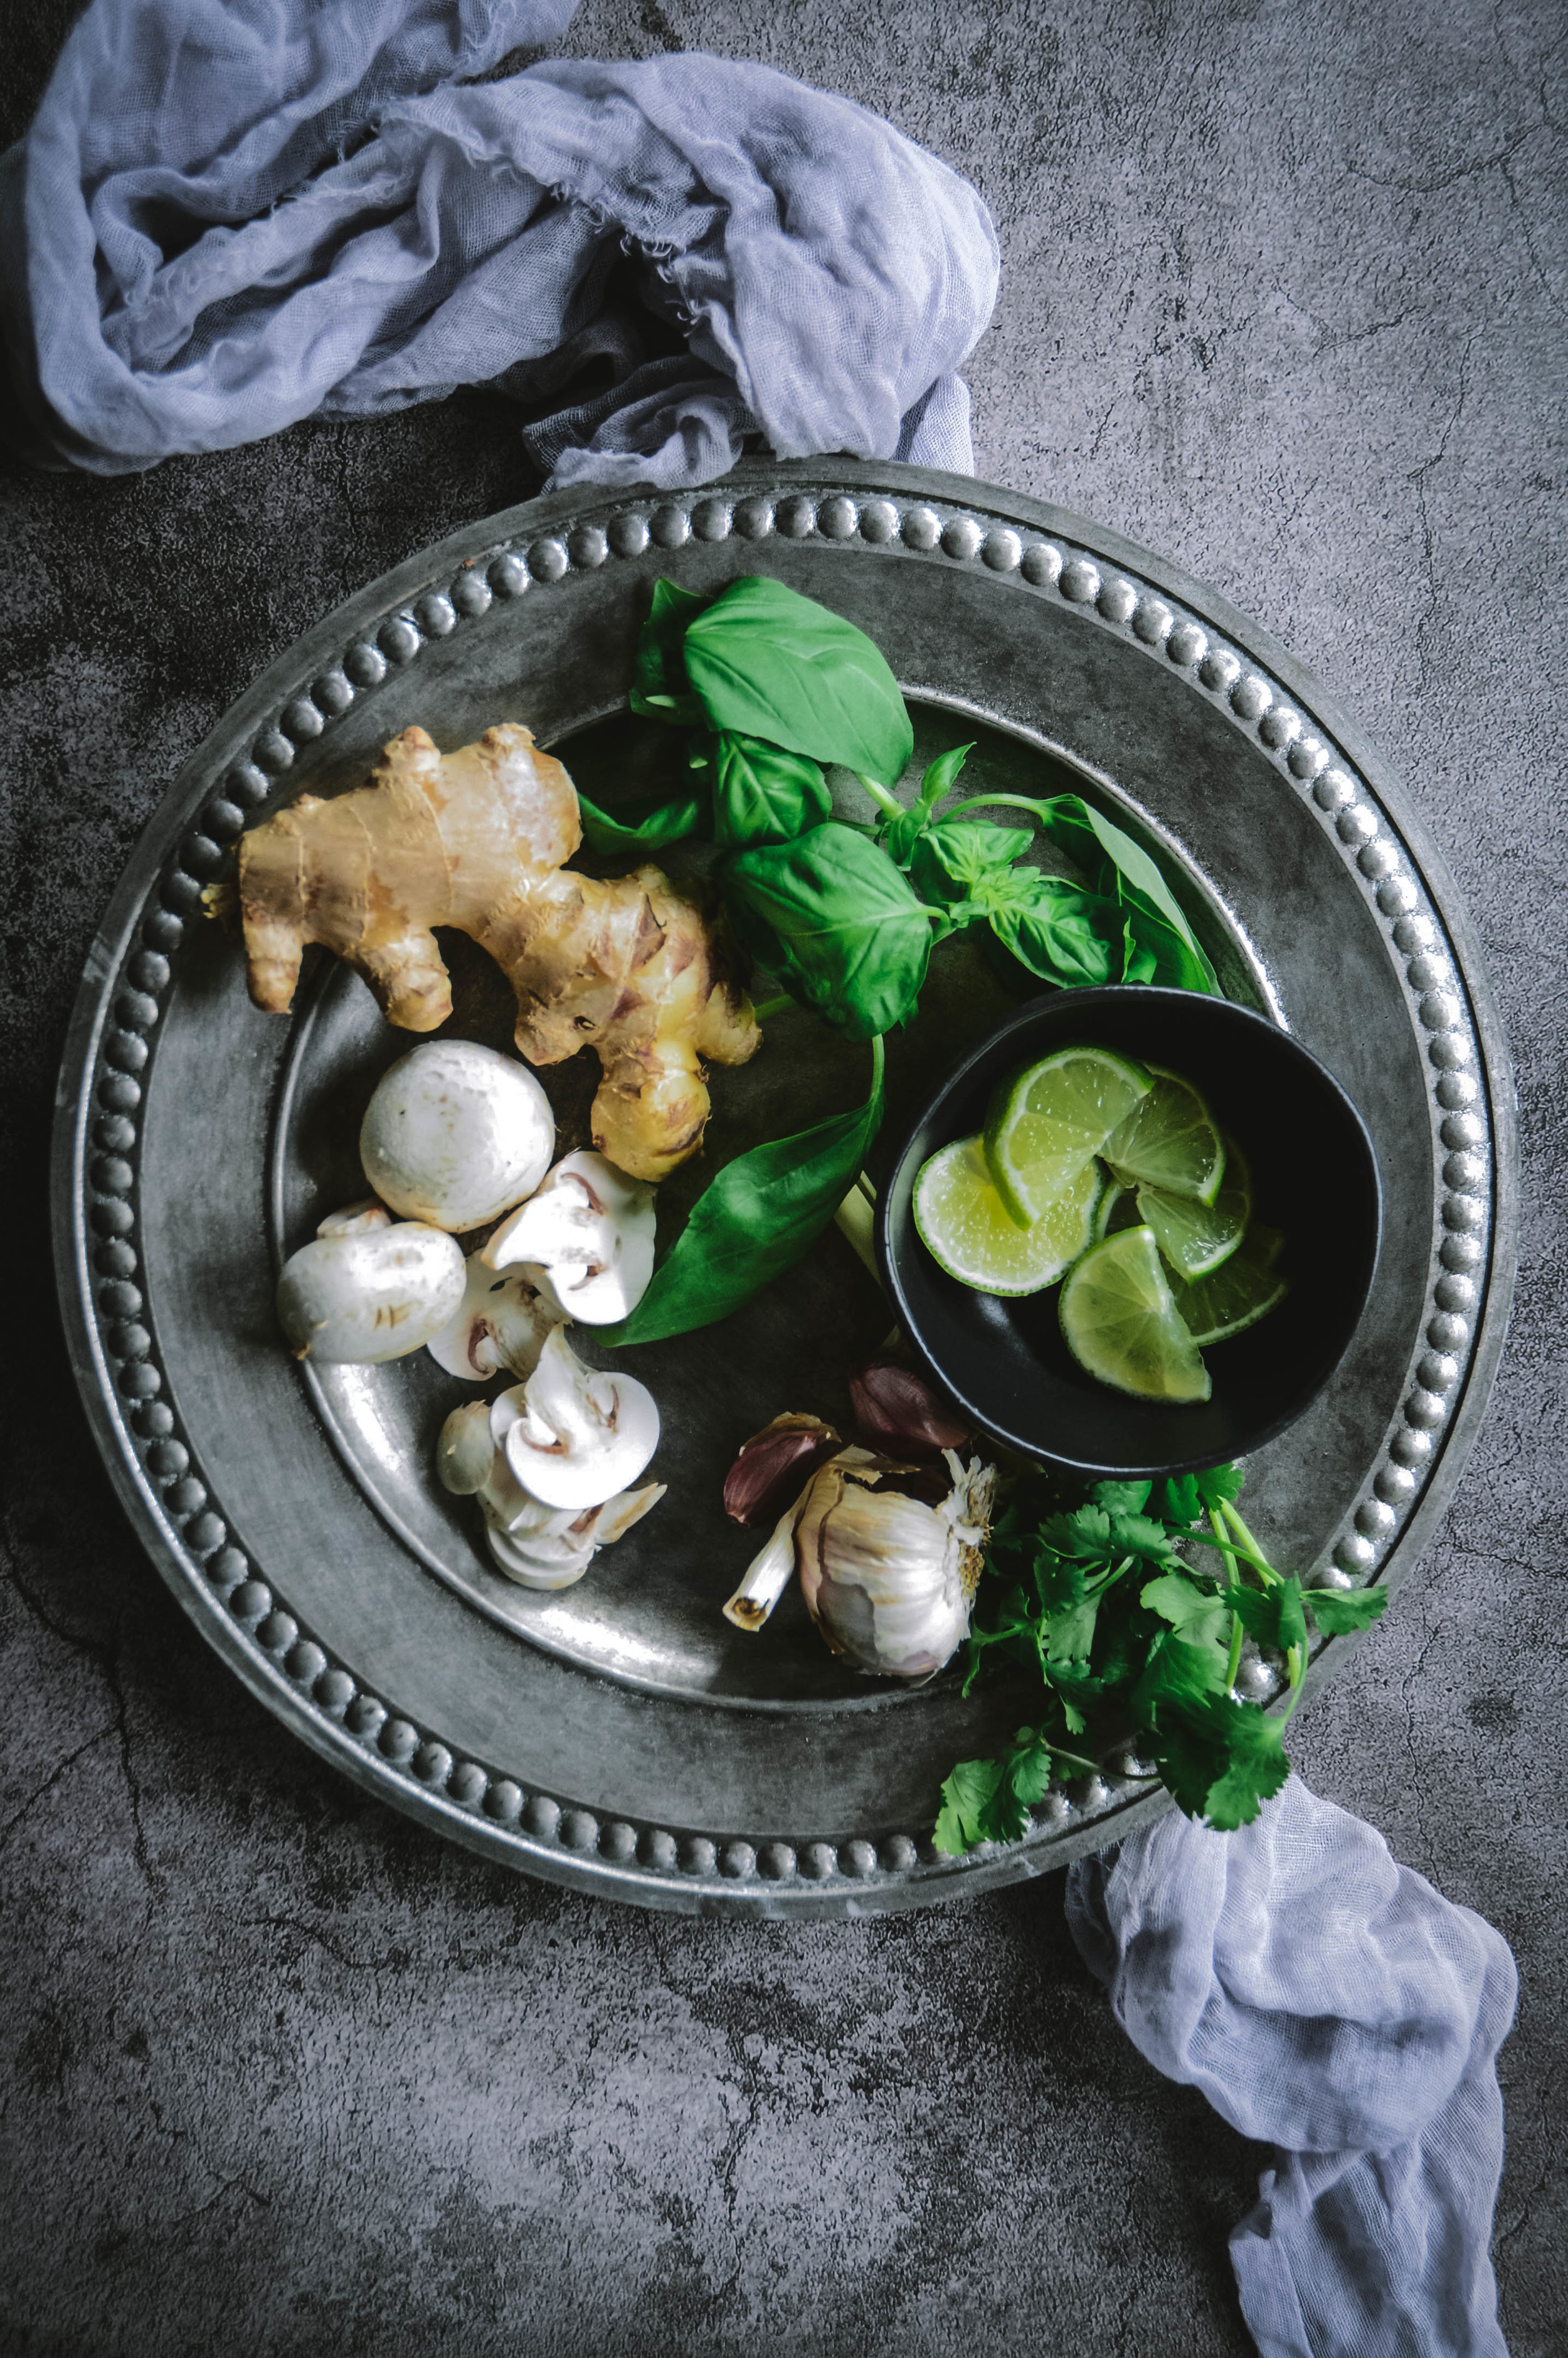 garlic ginger, mushrooms, lime and basil on plate with napkin